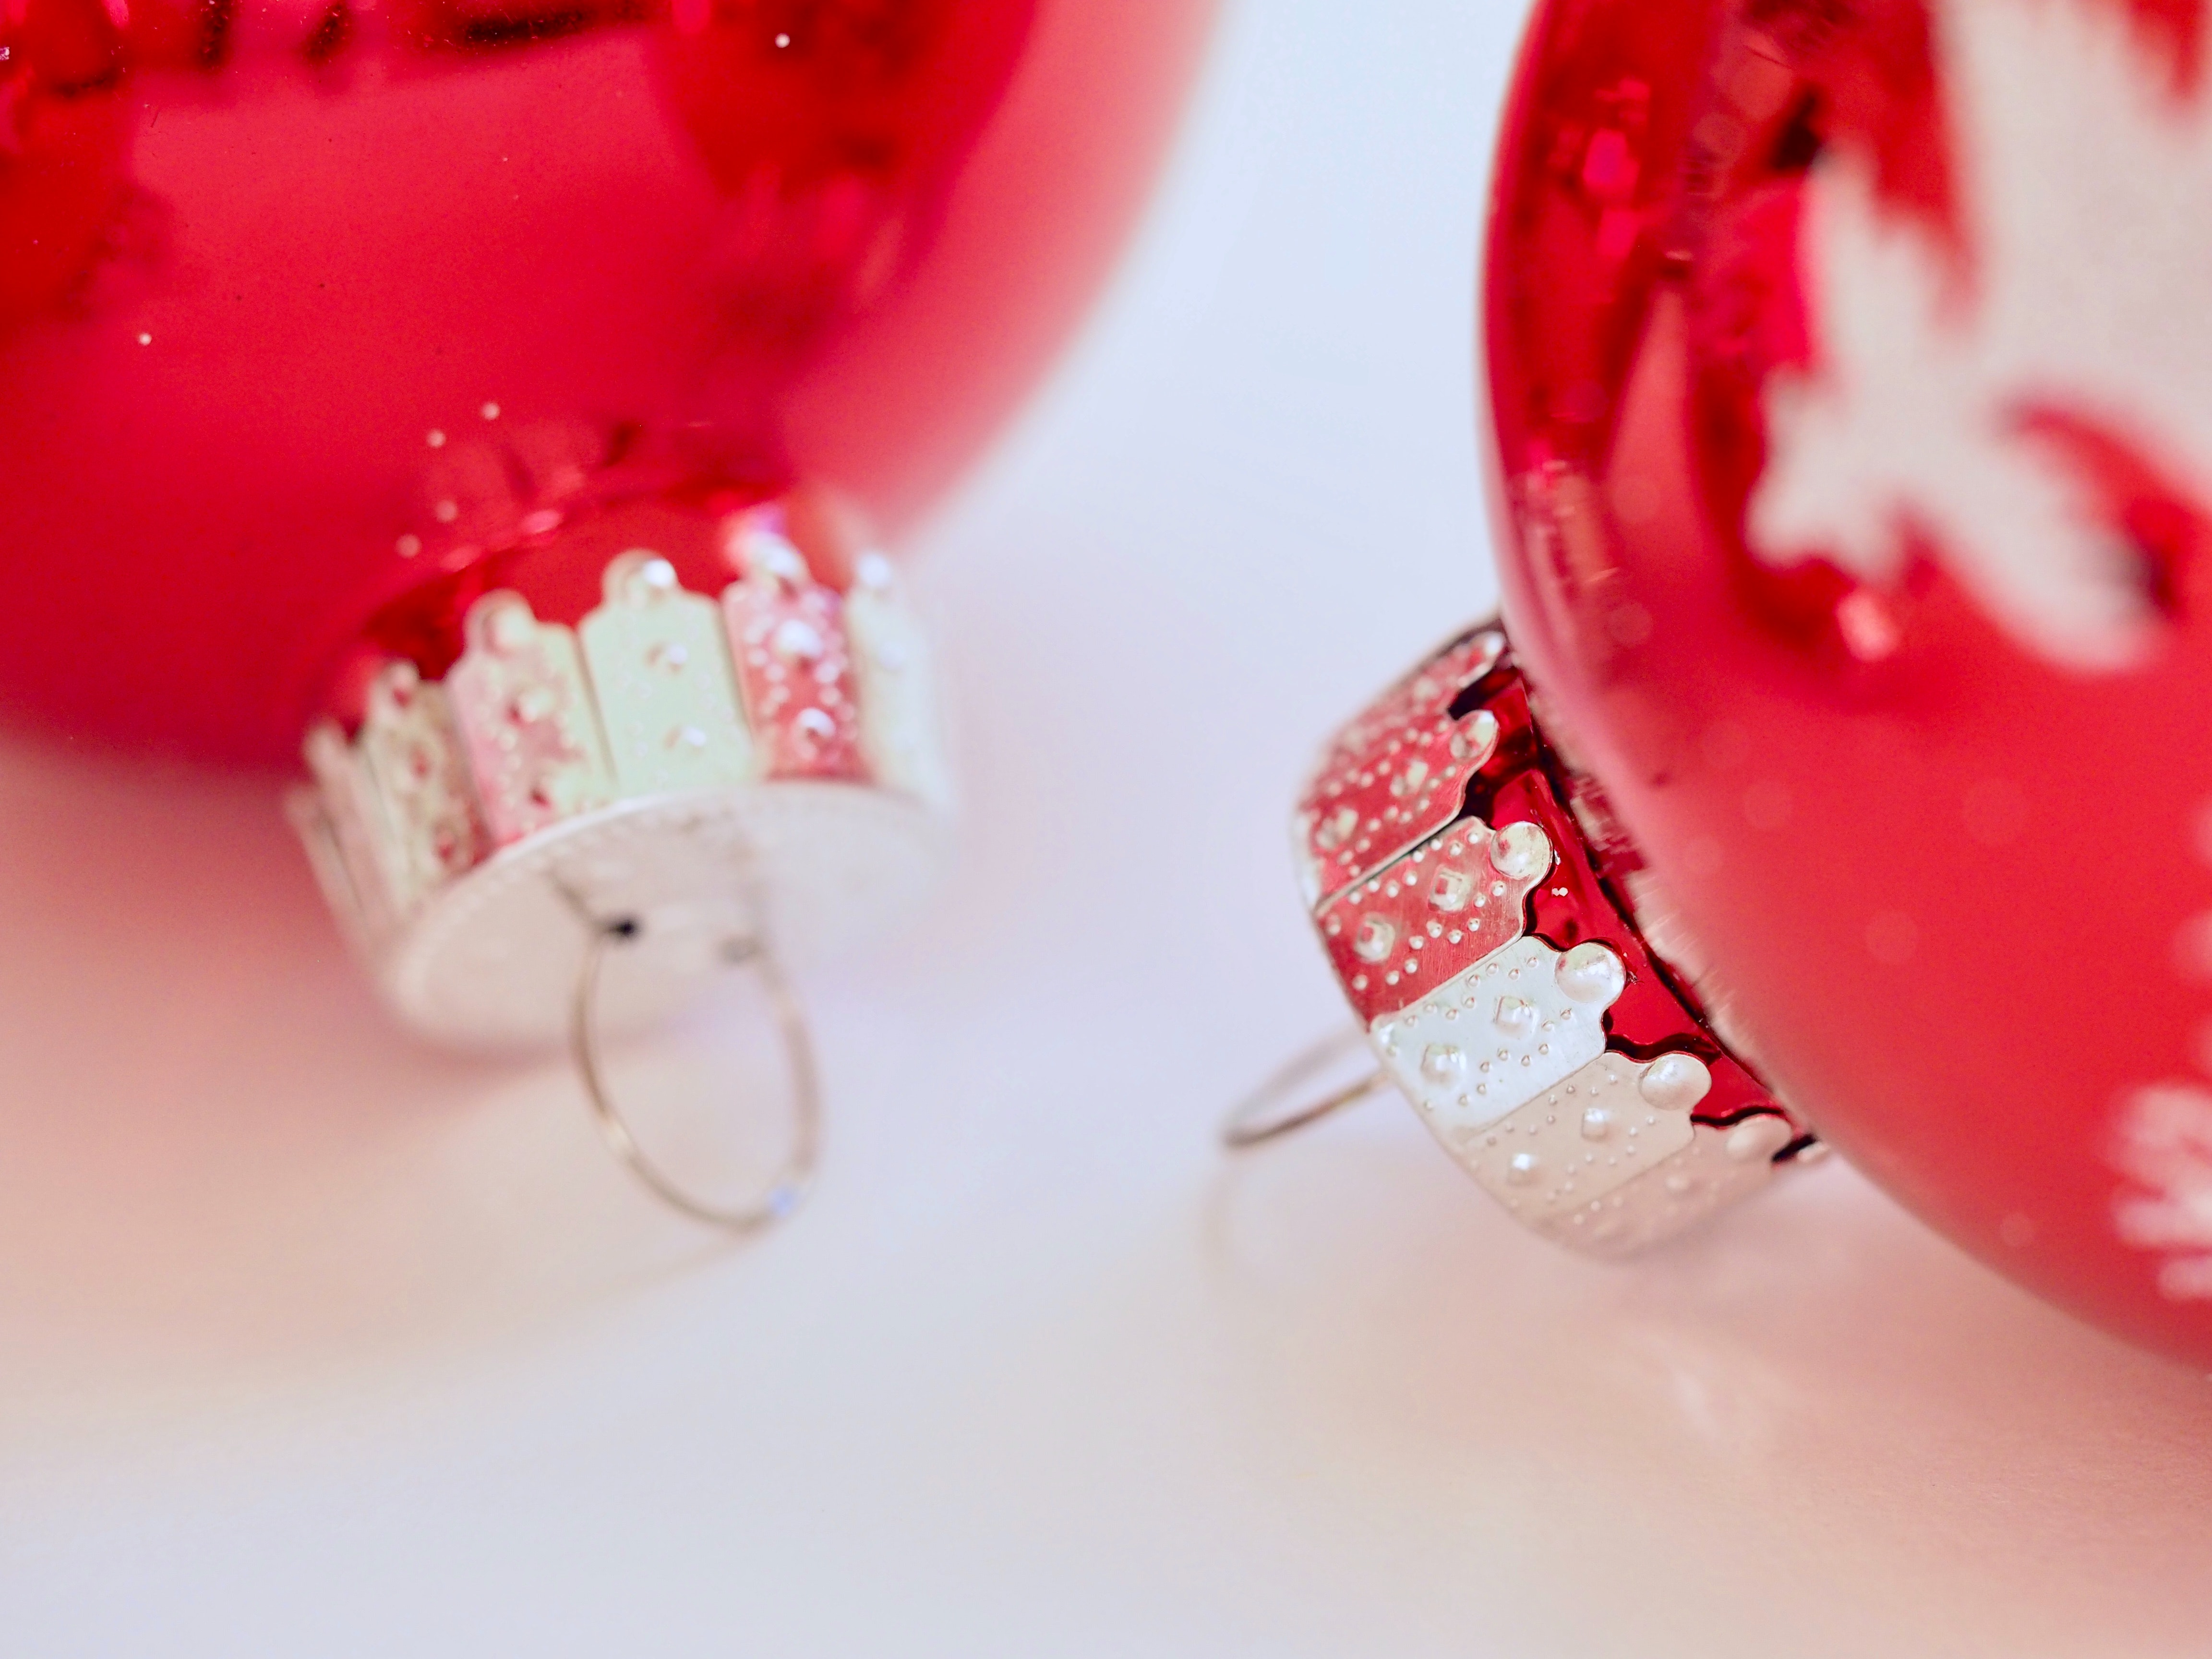 Two Red Christmas Ornaments, Merry christmas, Ornament, Merry, Red, HQ Photo